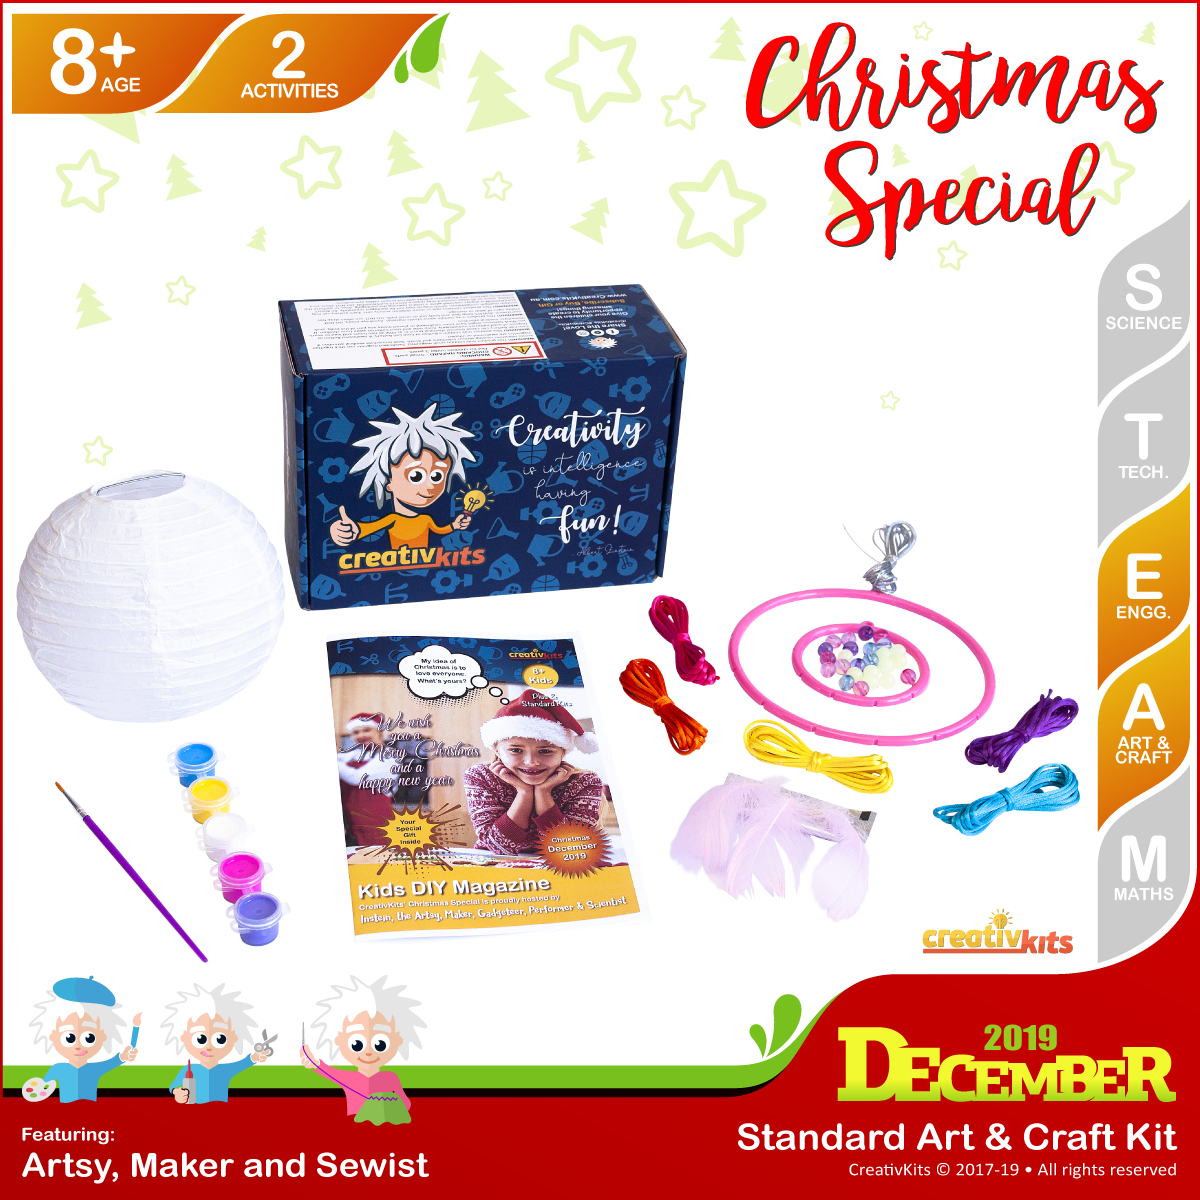 December Standard Art & Craft Kit • Age 8 plus • Glow In Dark Dreamcatcher and Painted Xmas Lantern